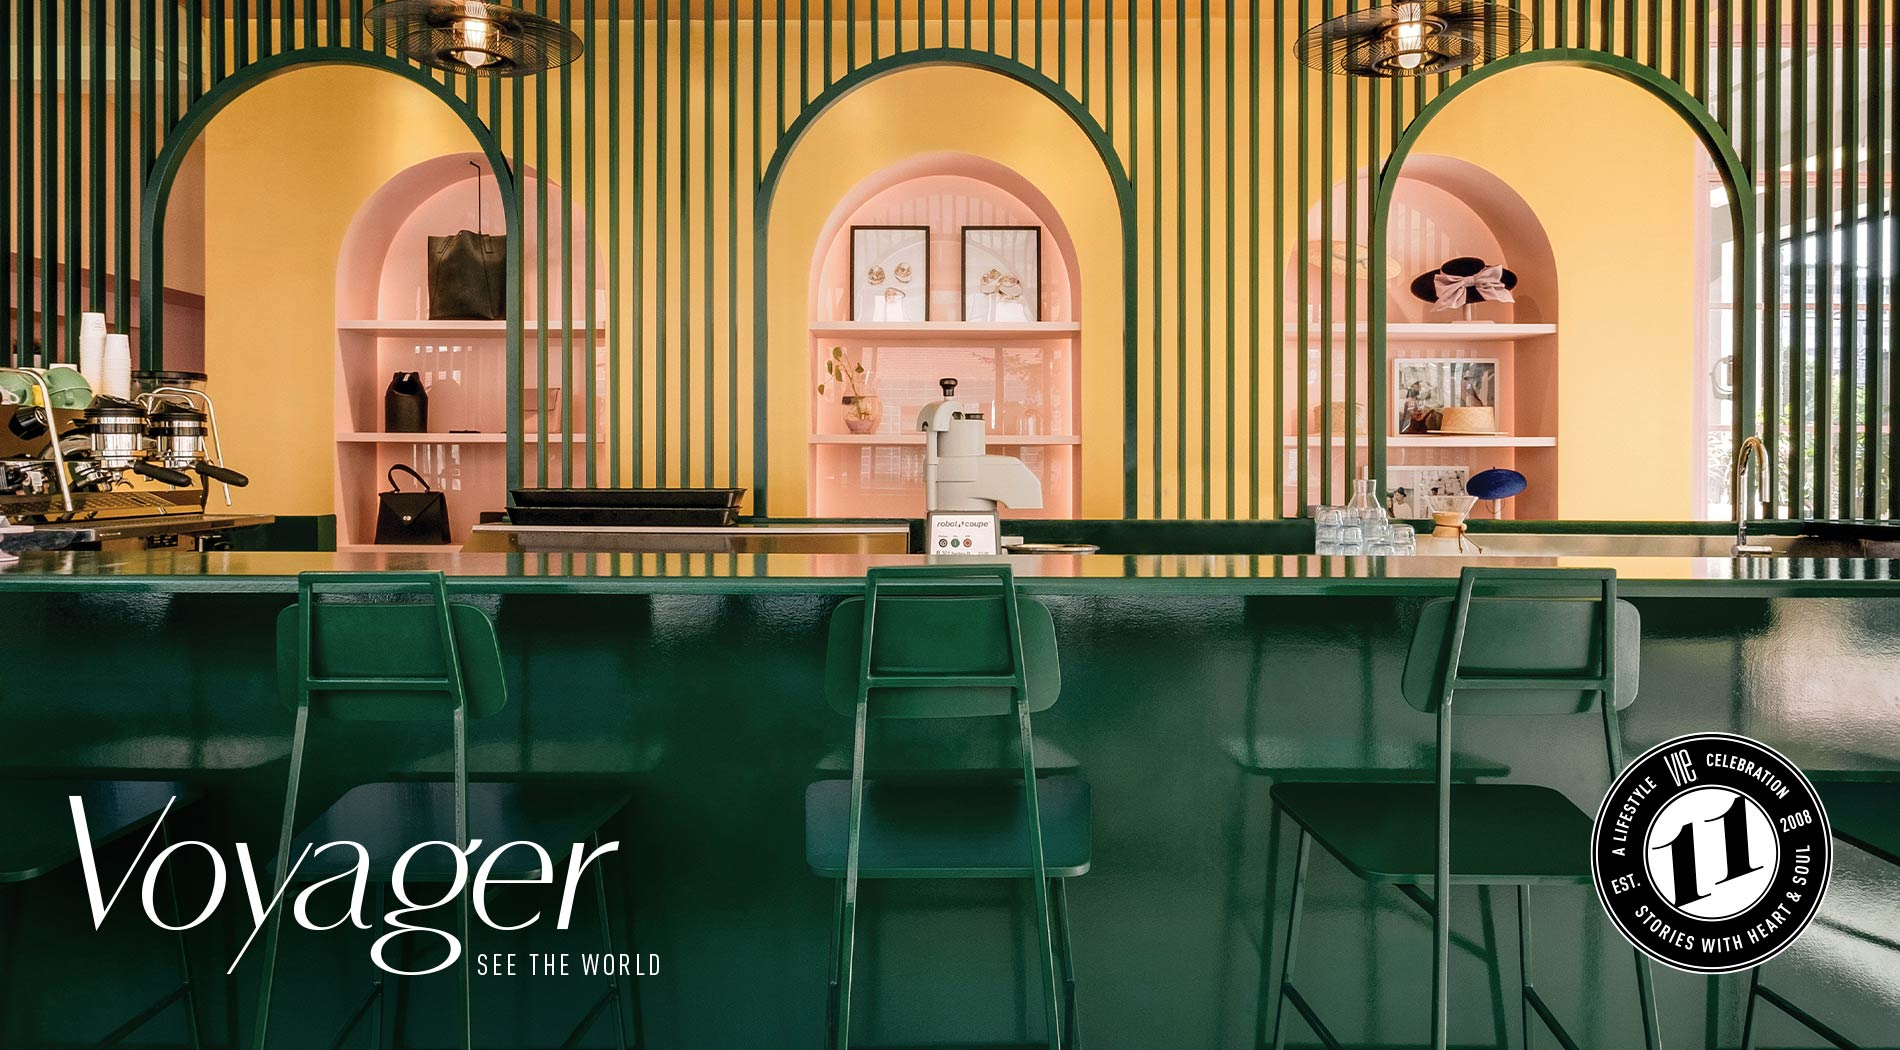 VIE Magazine - August 2019 - The Architecture and Design Issue - Voyager